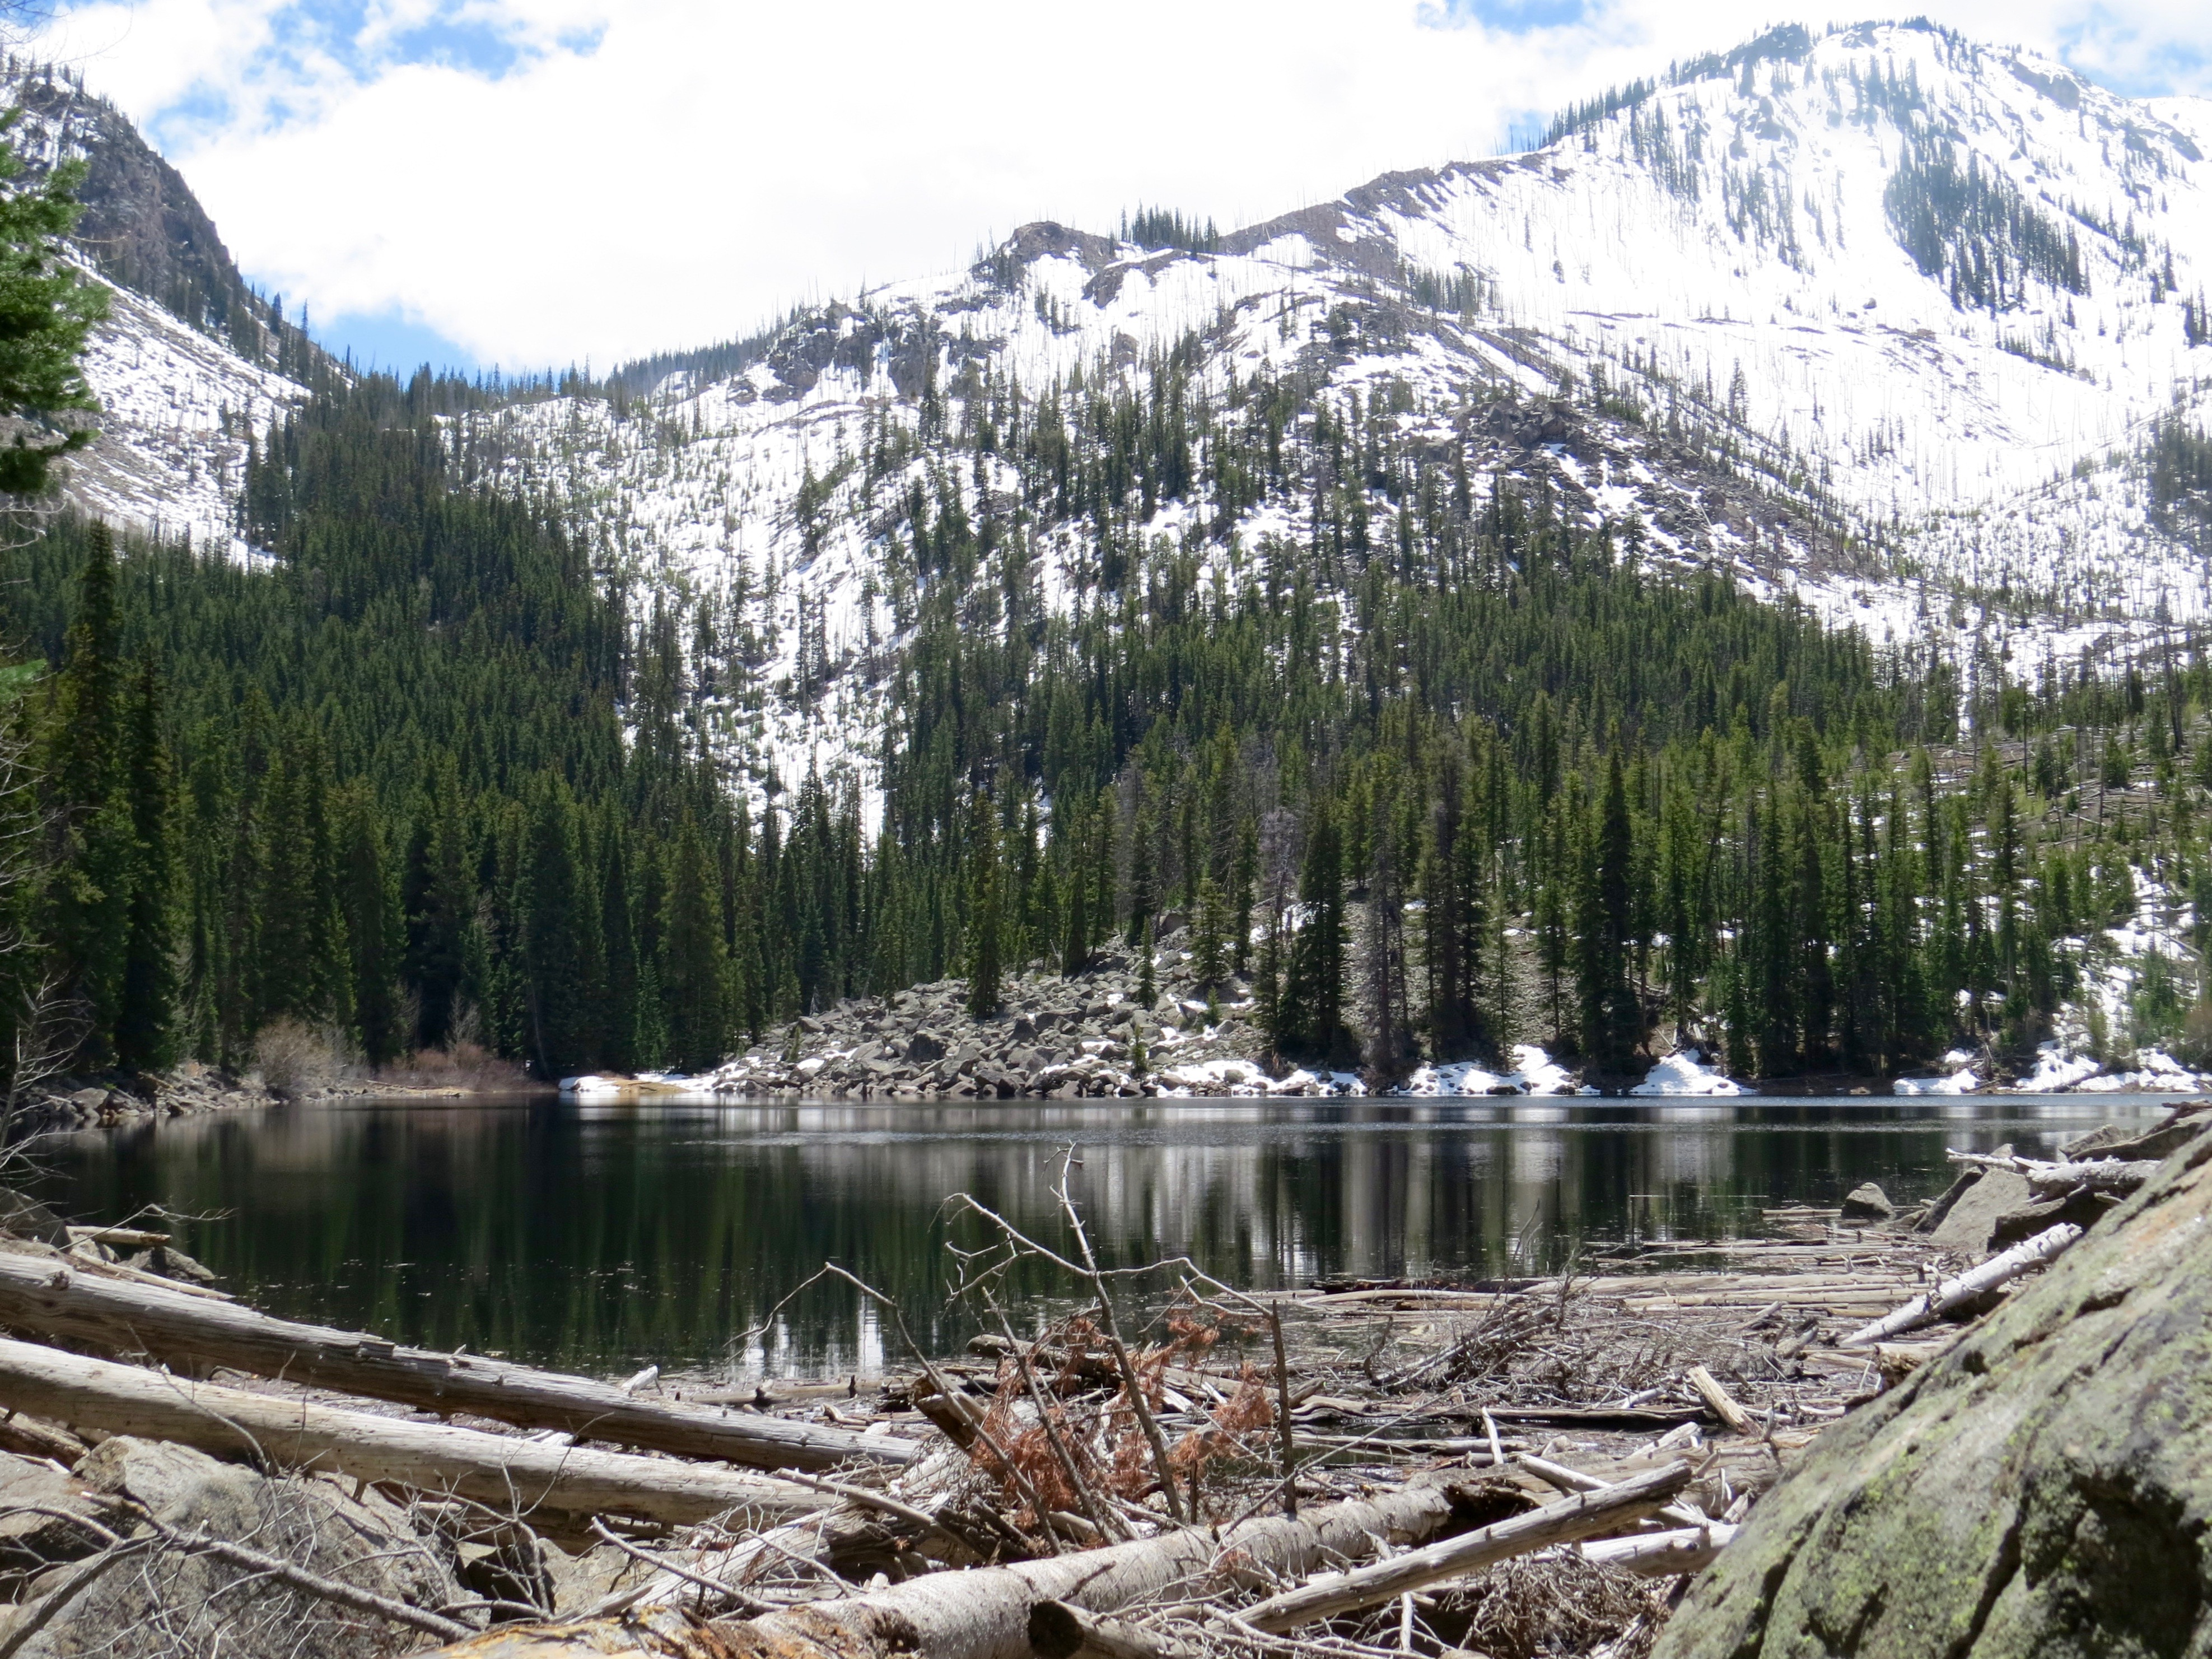 I EXPERIENCED MY OWN MEMORABLE ADVENTURE THIS WEEK ON MY FIRST VOLUNTEER USFS RANGER DUTY.  I HIKED THROUGH SNOW AND FALLEN TREES BUT FINALLY REACHED BEAUTIFUL WELLER LAKE.